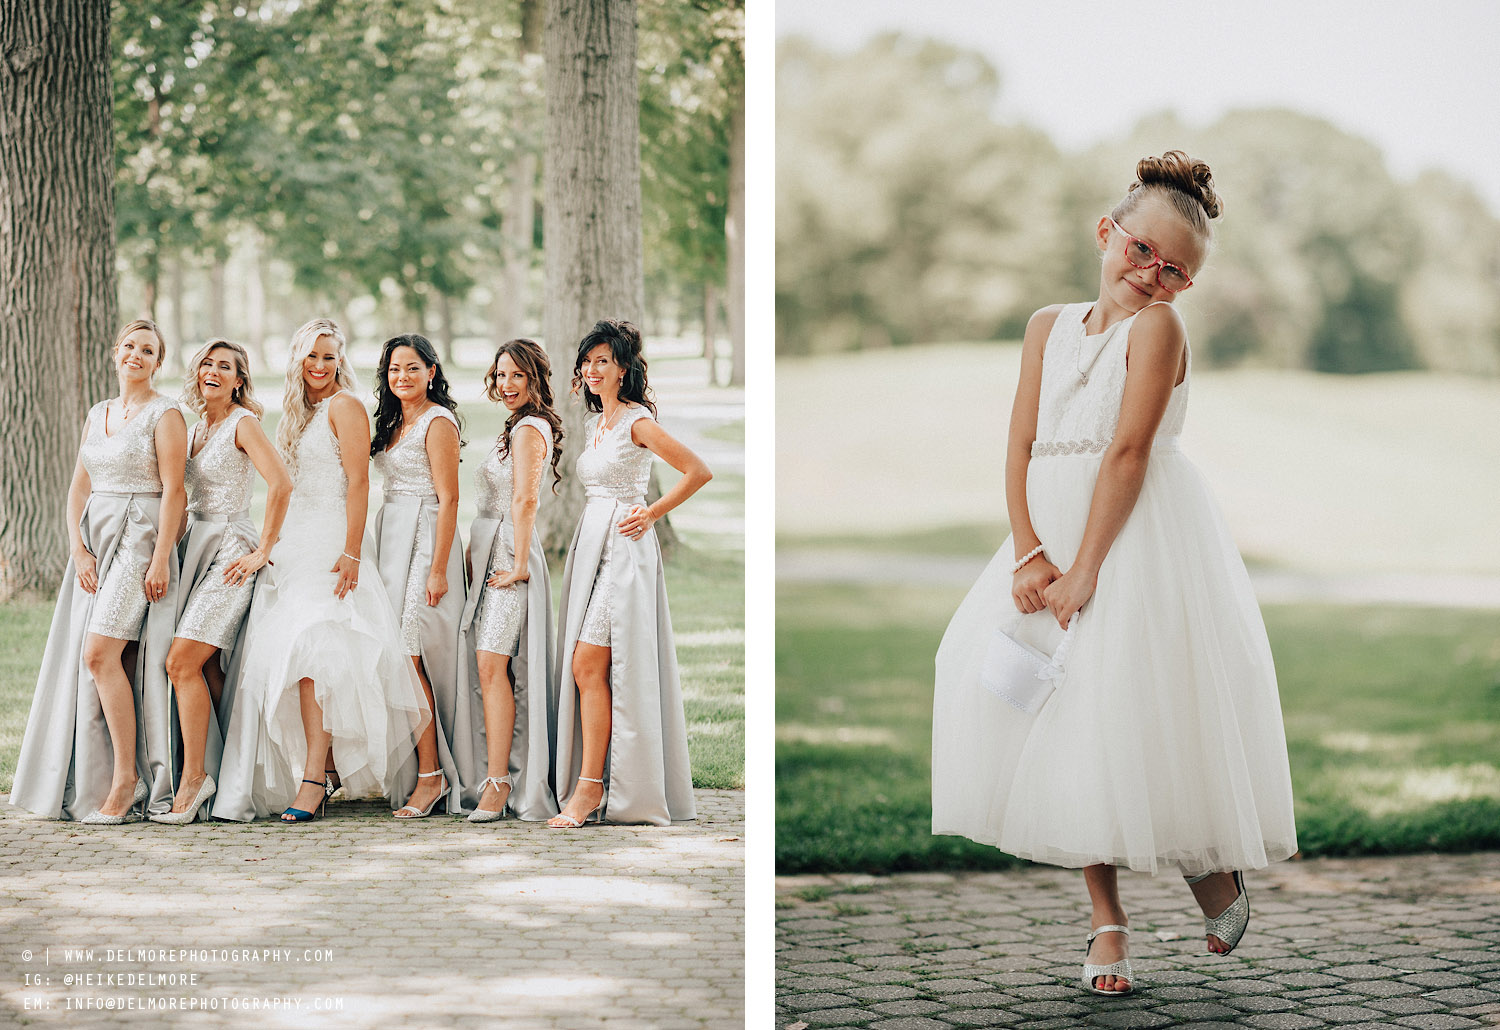 Weddings Photographers Windsor ON Editorial Style